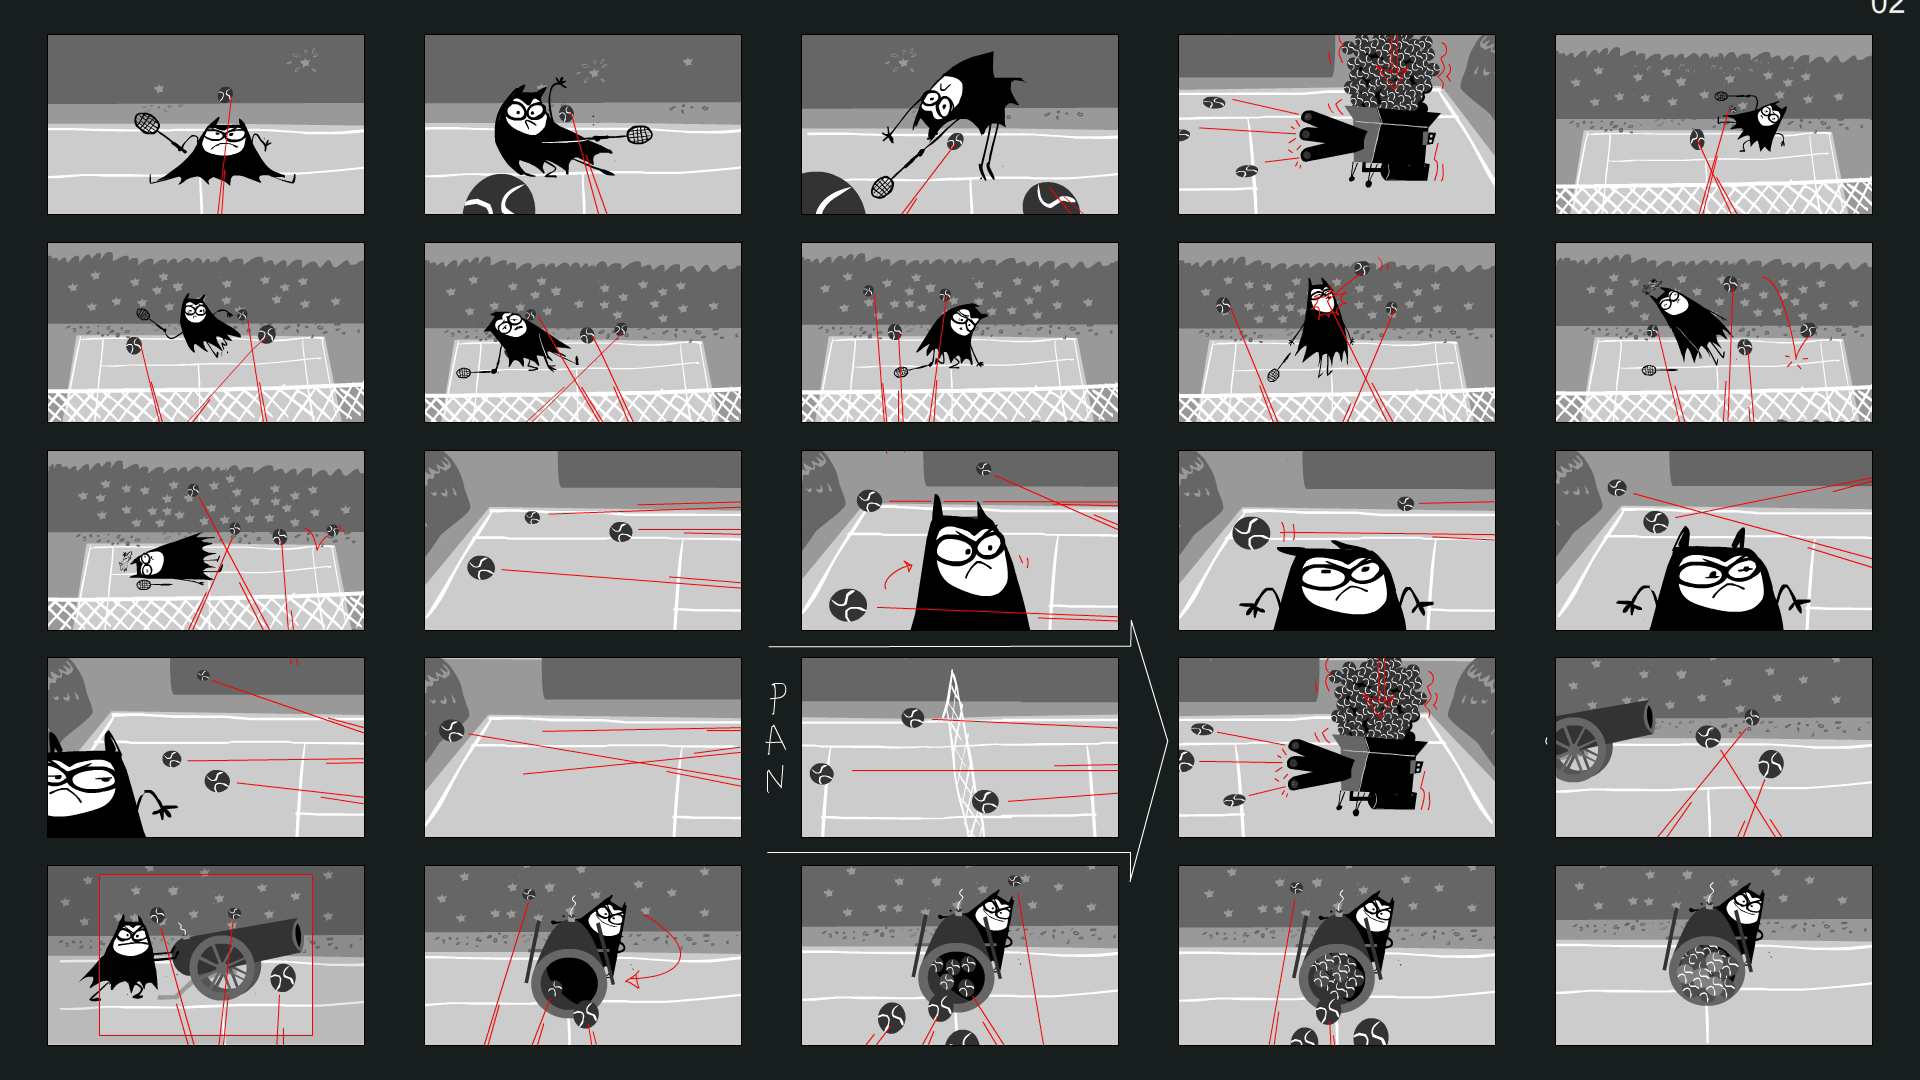 MikeOwens_STORYBOARDS_LilBat_Tennis_Page_2.png